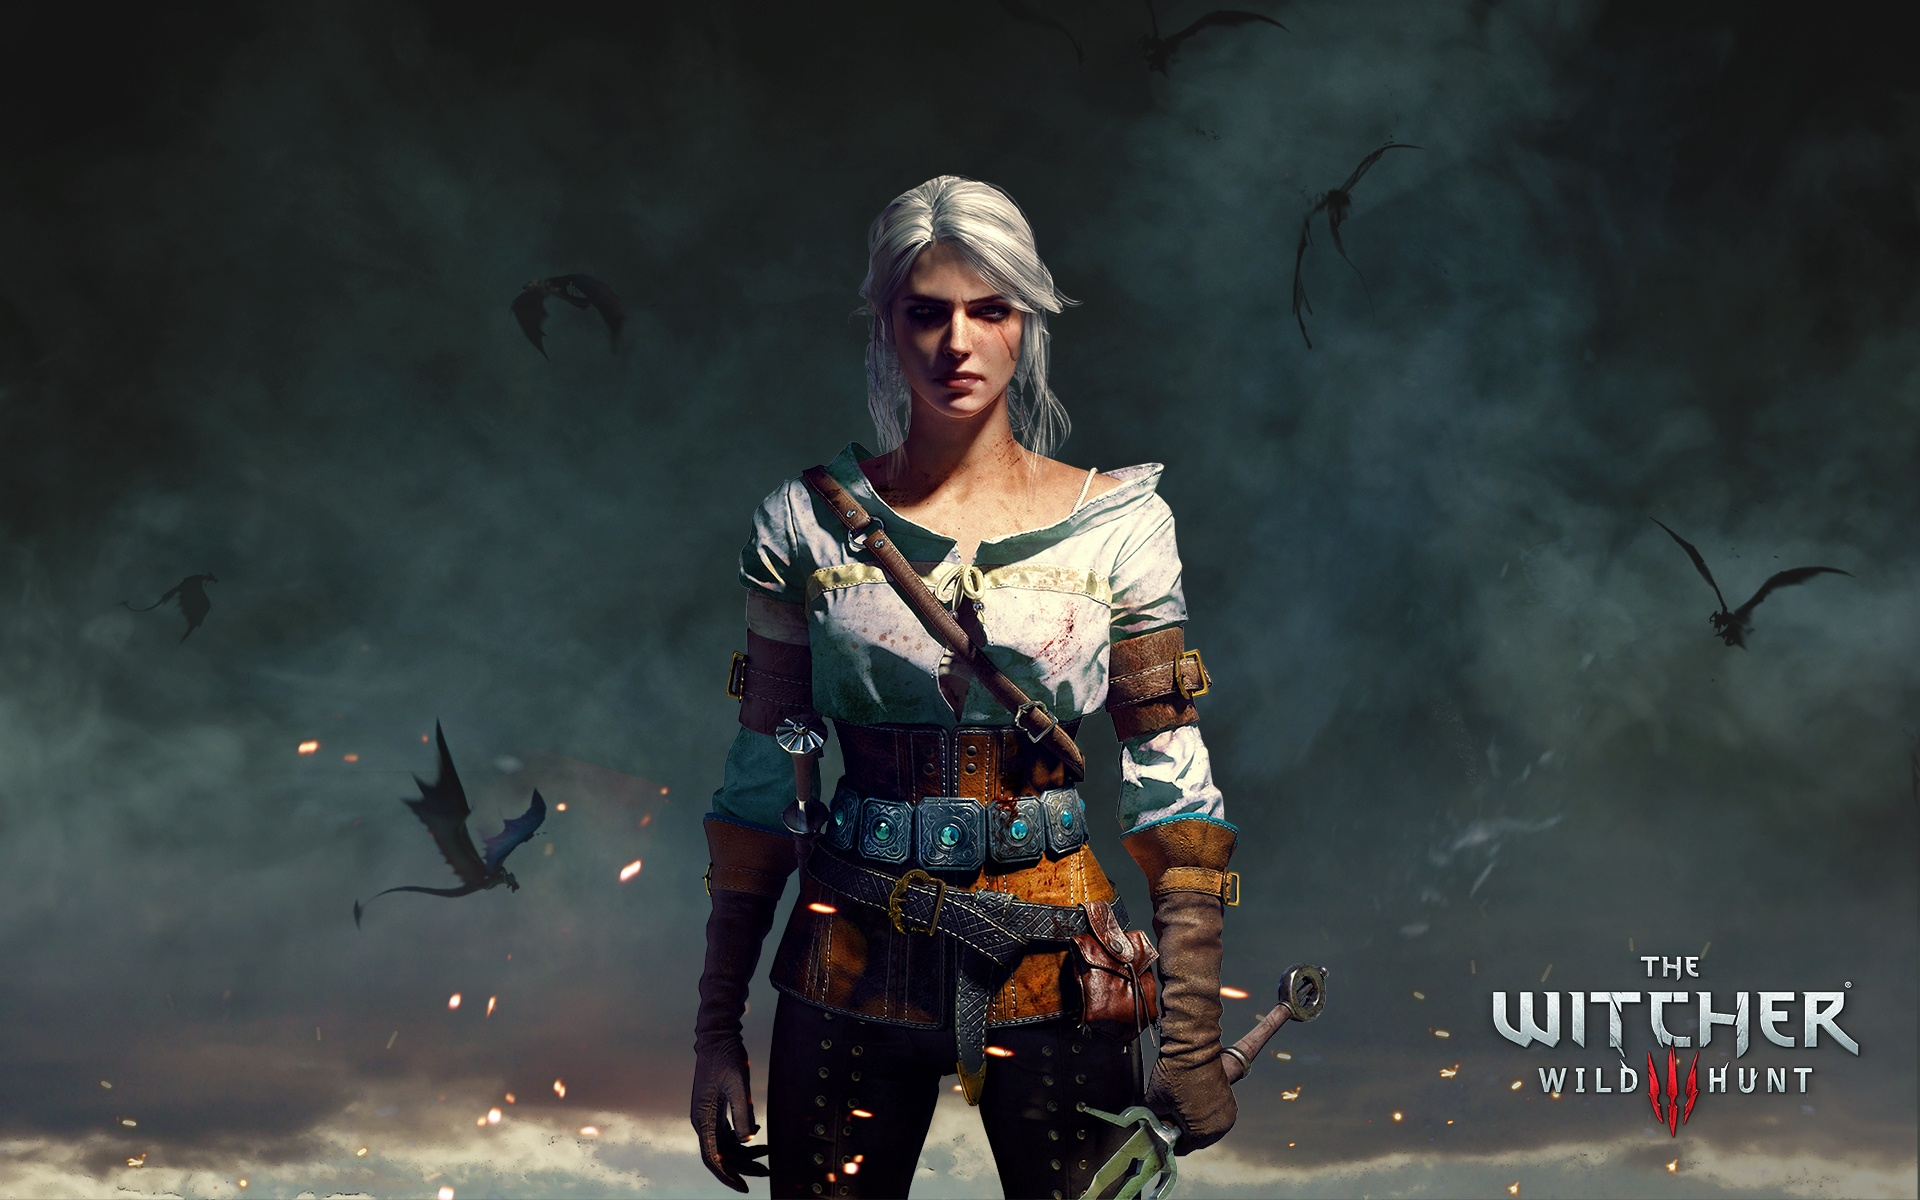 Ciri The Witcher 3 Wild Hunt Wallpapers In Jpg Format For Free Download